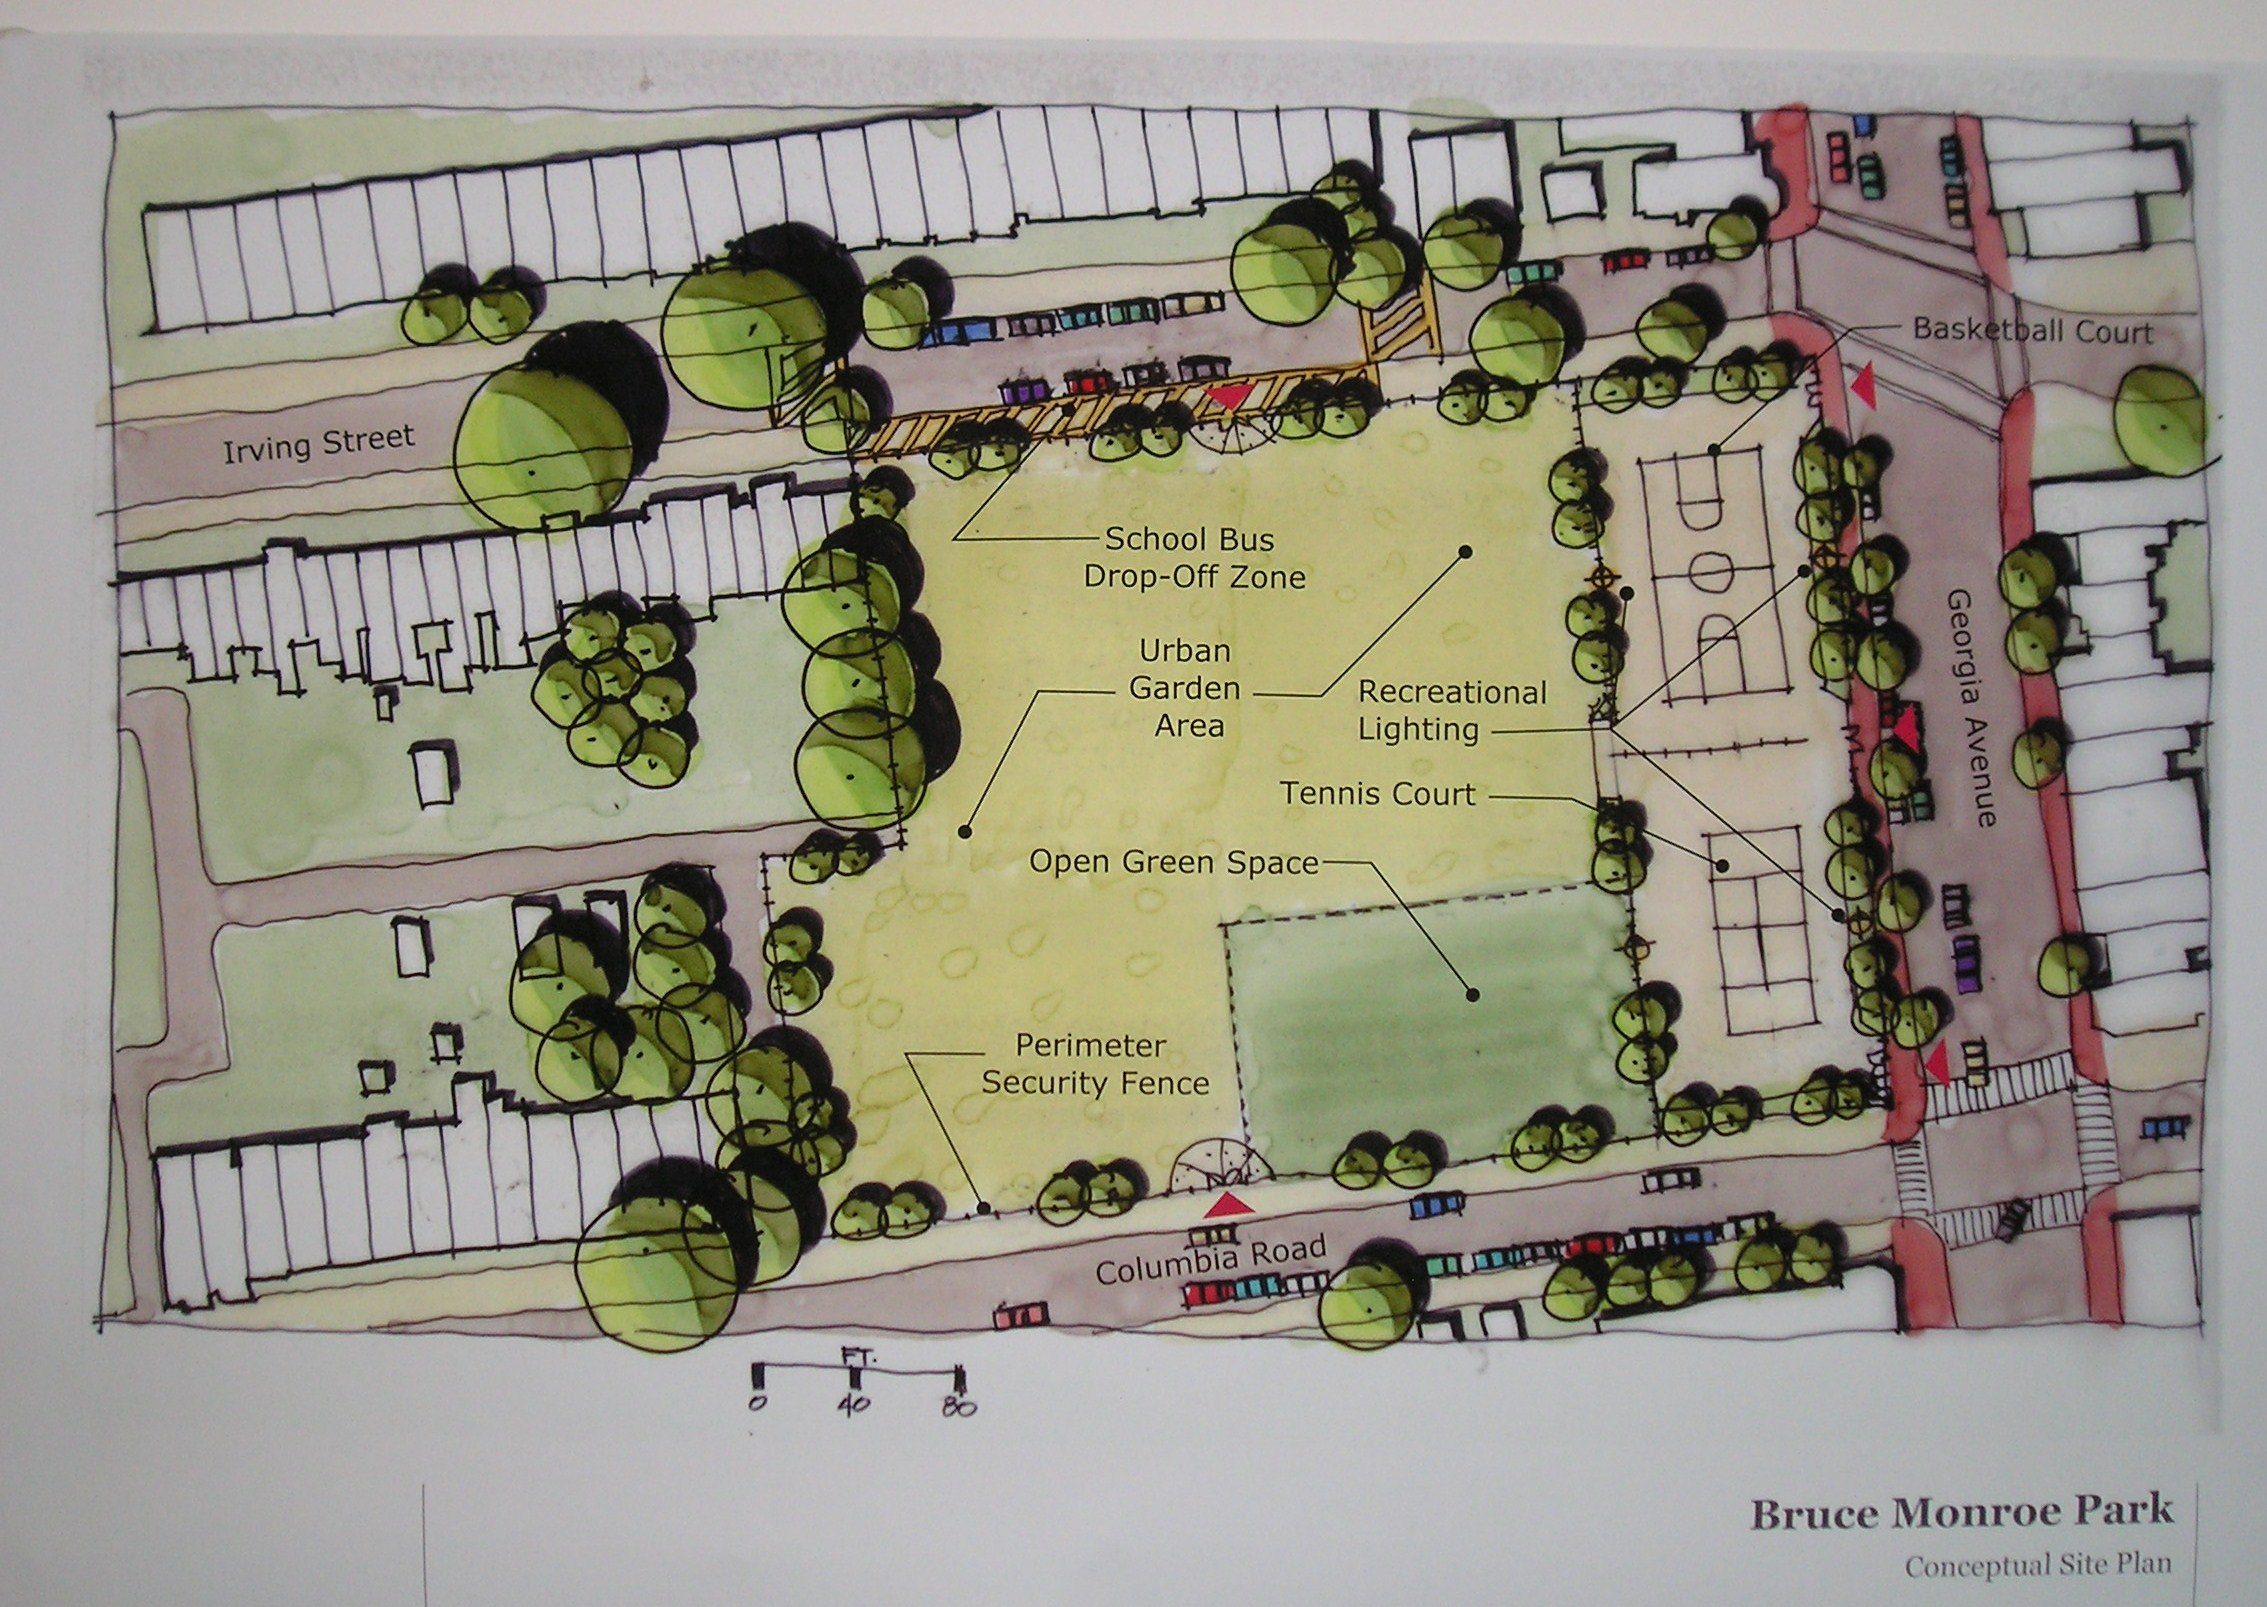 Sketch Floor Plans Initial Look At Bruce Monroe Interim Use Proposal Park